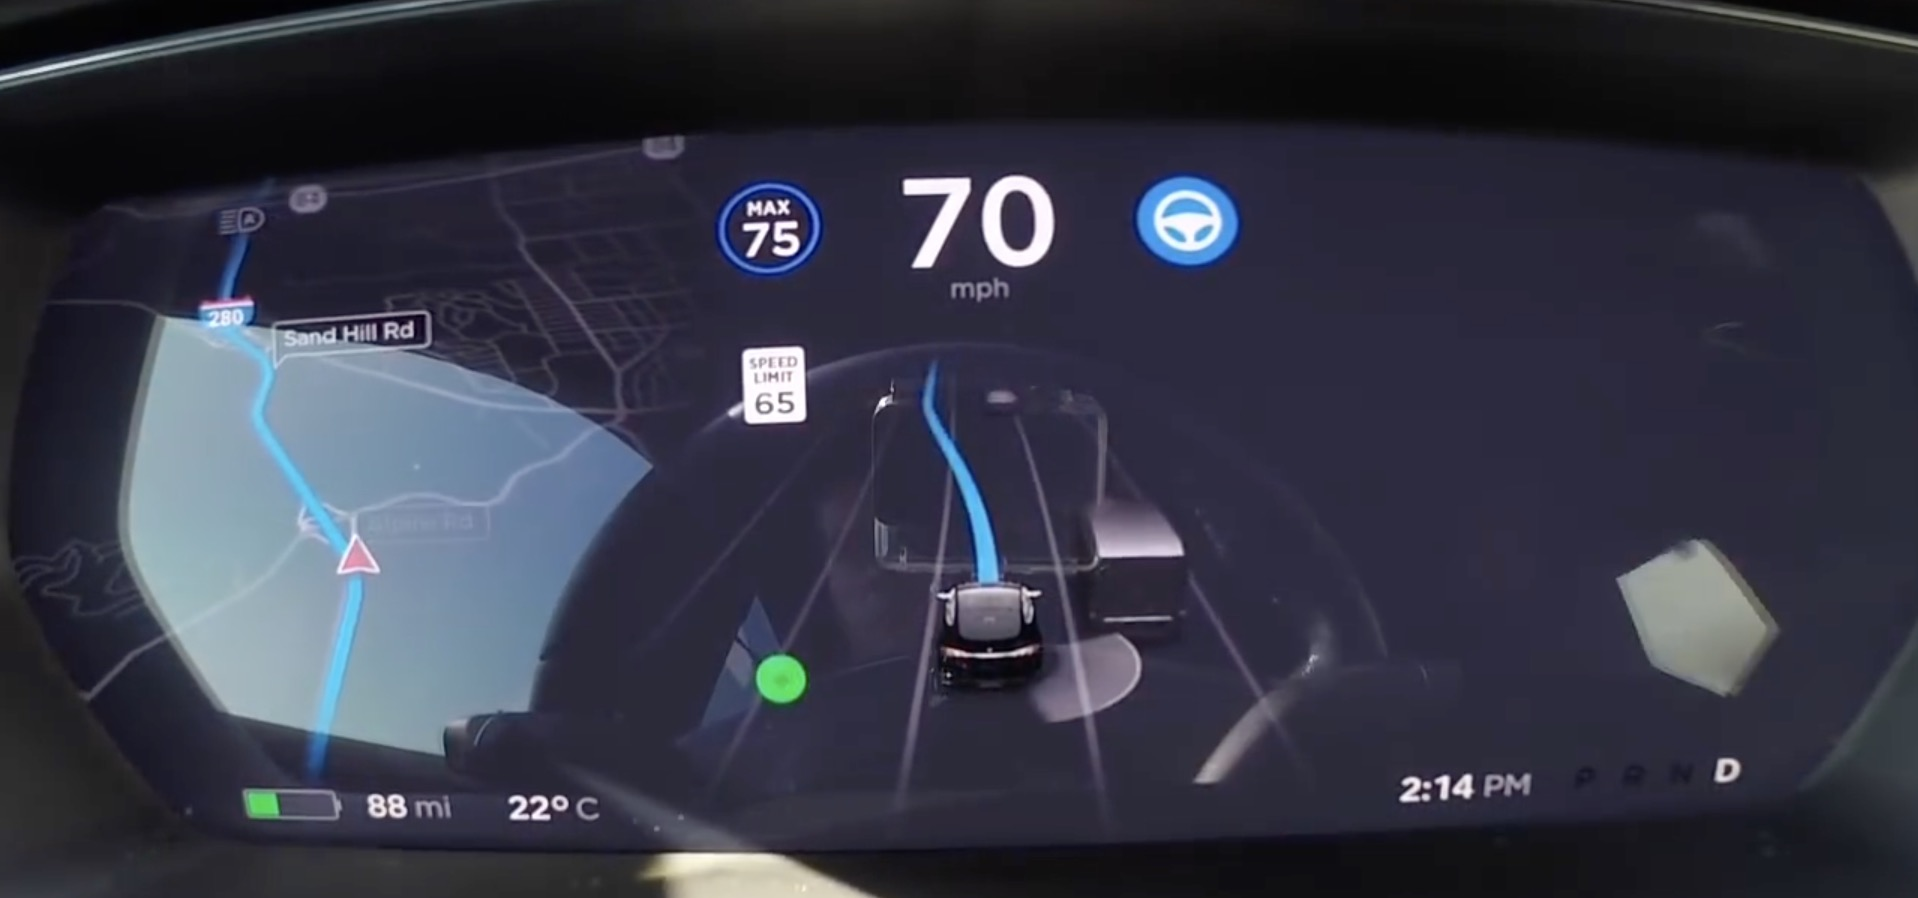 Tesla patents technology for more accurate GPS positioning